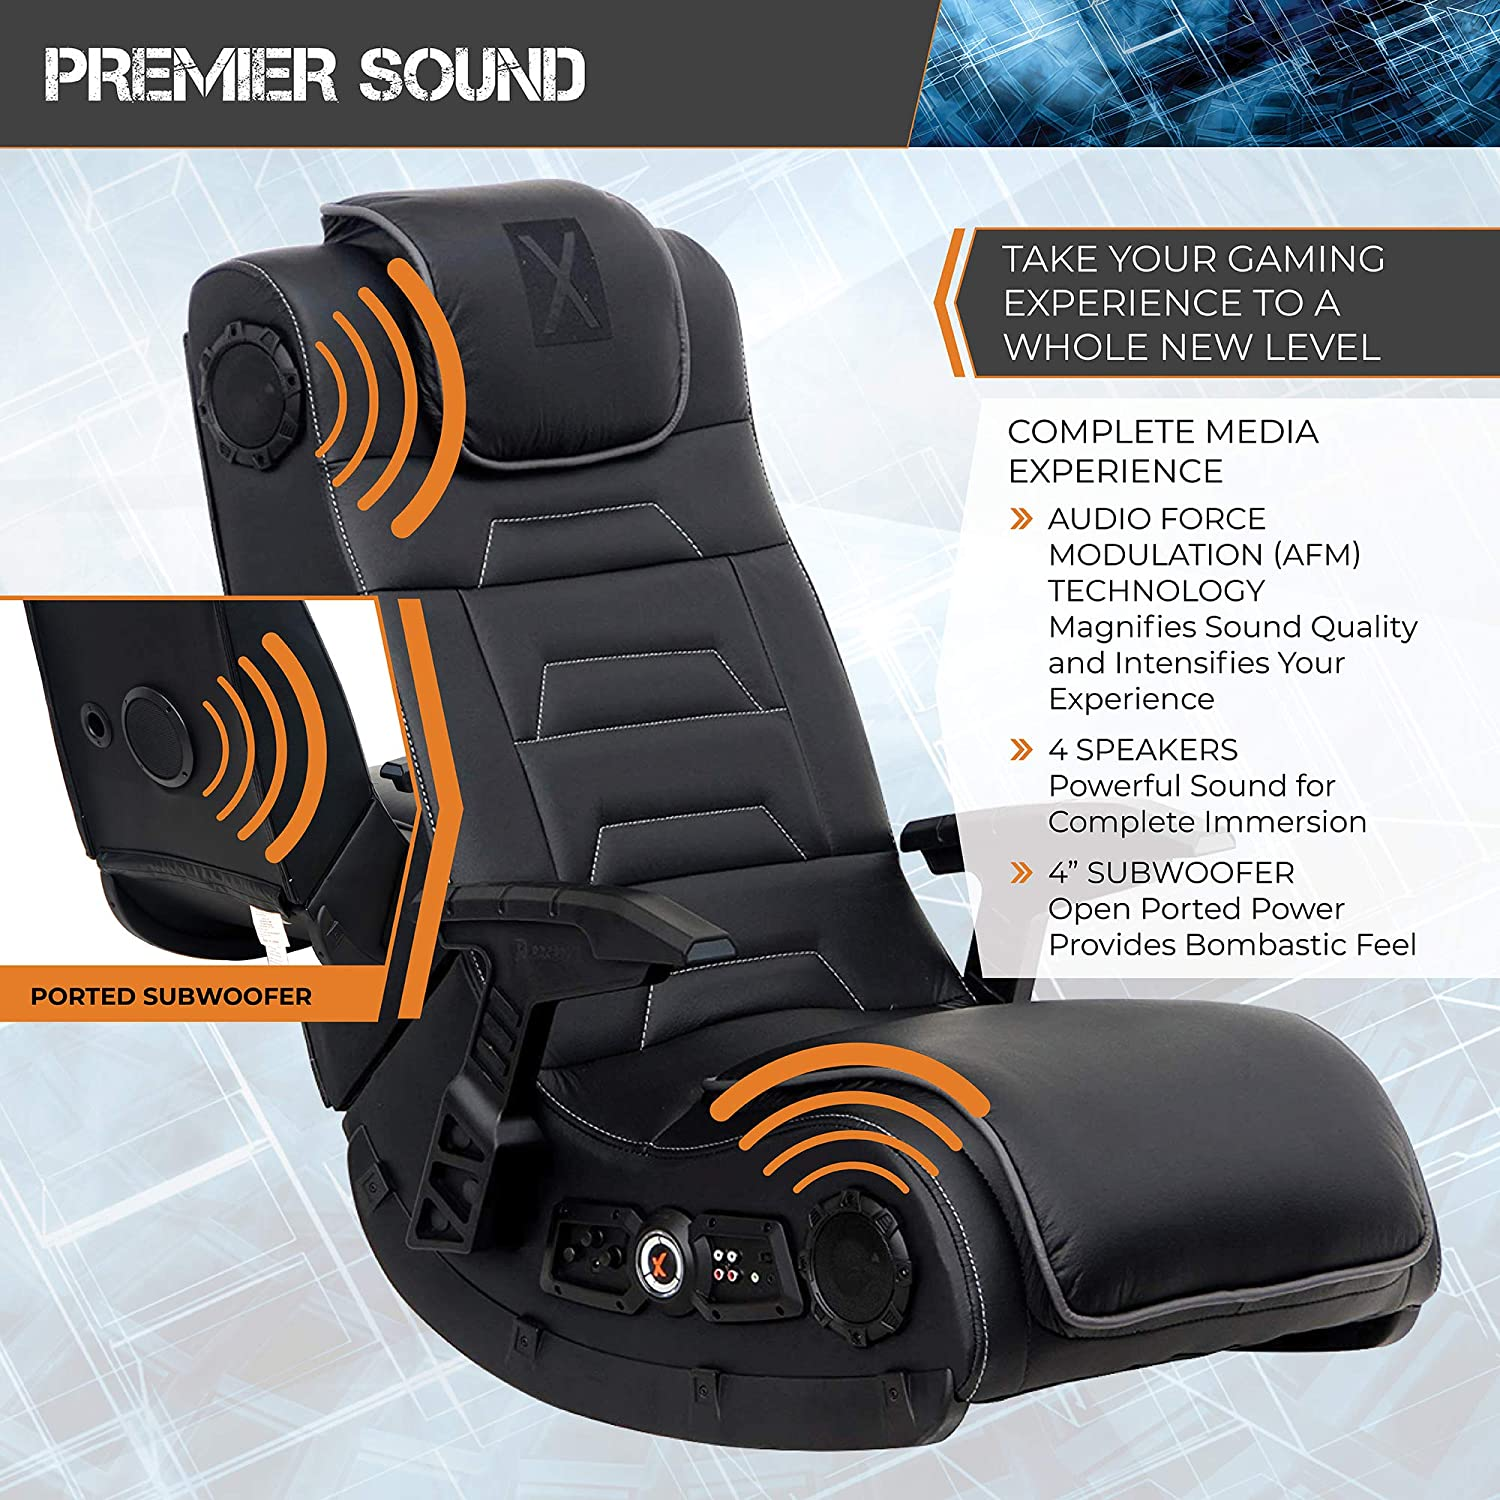 Super X Rocker Pro Series H3 Black Leather Vibrating Floor Video Gaming Chair With Headrest For Adult Teen And Kid Gamers 4 1 High Tech Audio And Evergreenethics Interior Chair Design Evergreenethicsorg